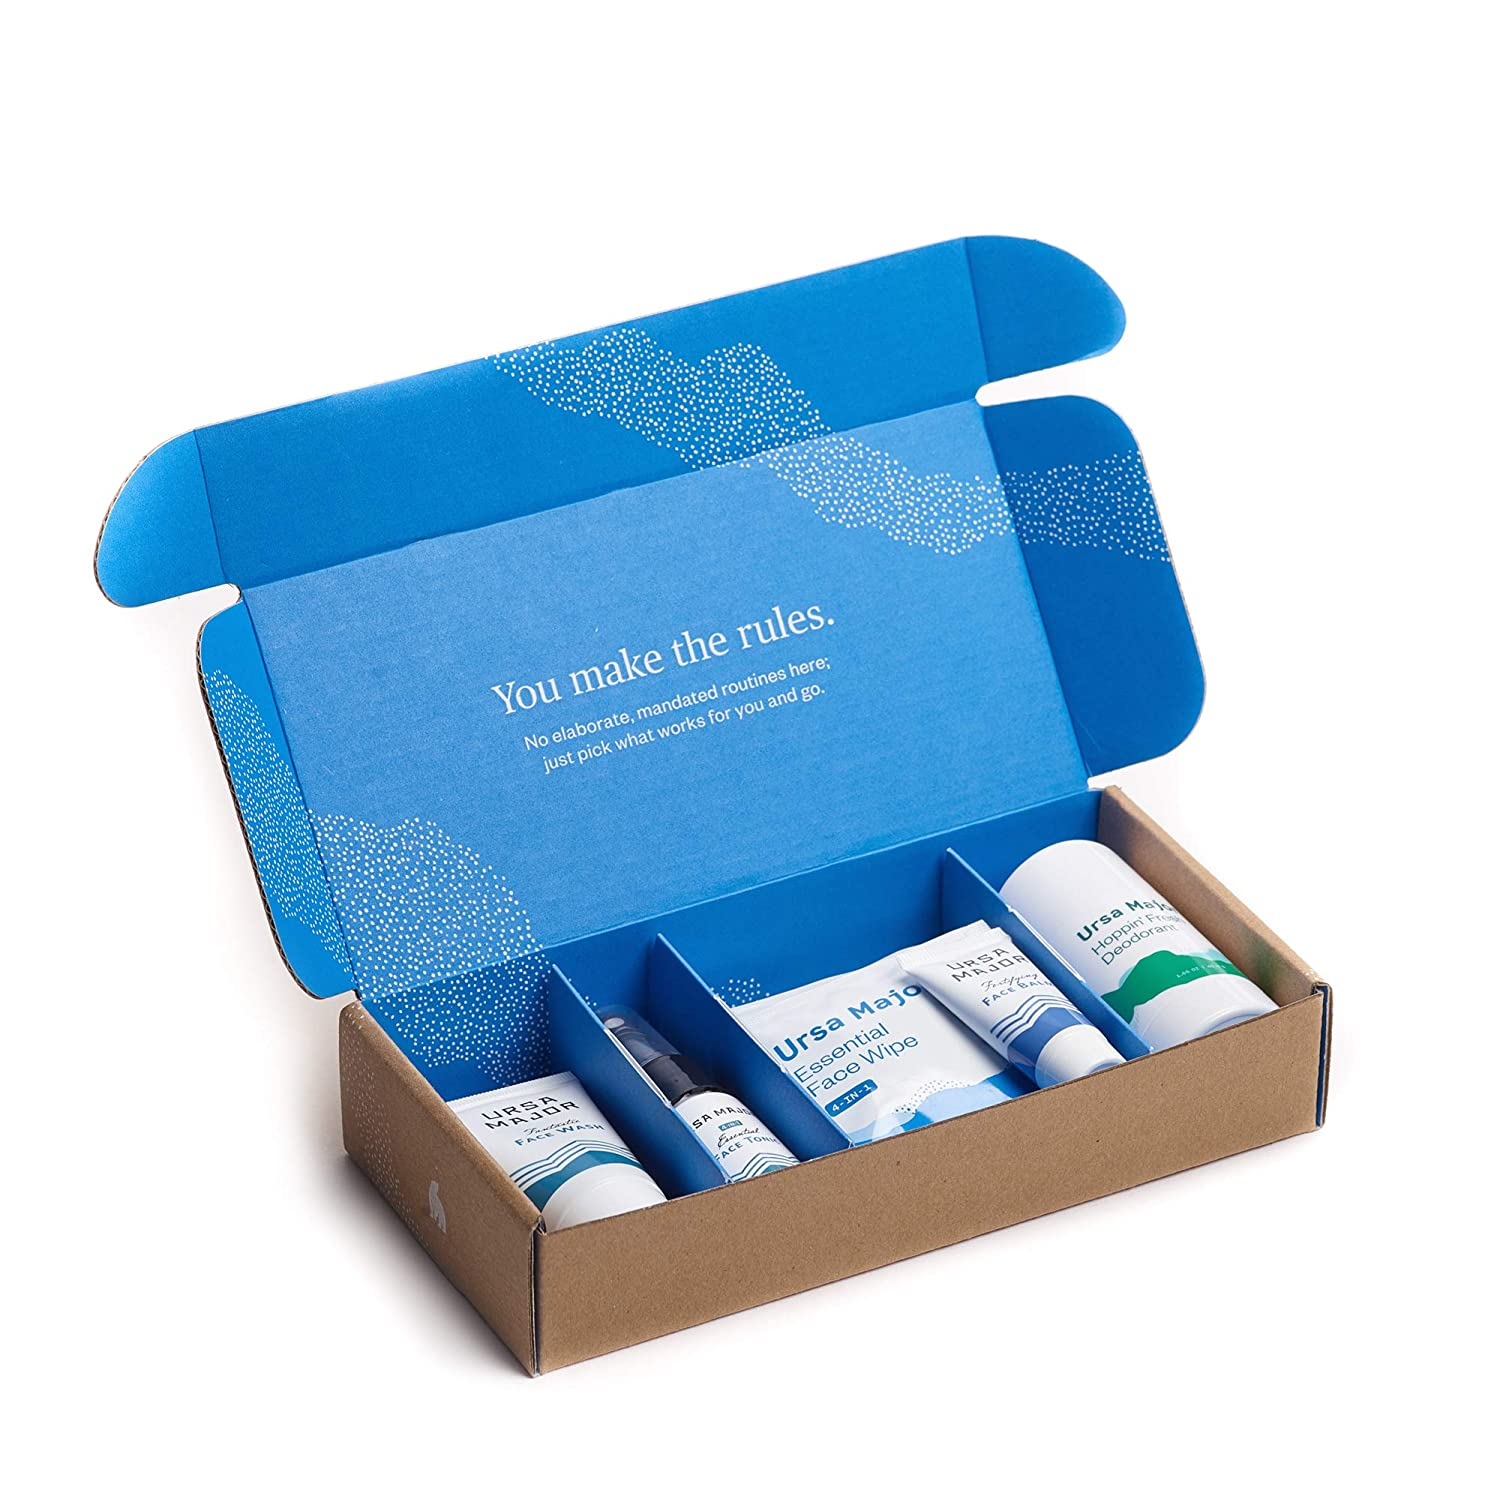 Ursa Major Bestsellers Trial Kit | Two-Week Supply of Natural Skincare Essentials | Face Wash, Face Toner, Face Wipes, Face Moisturizer and Deodorant